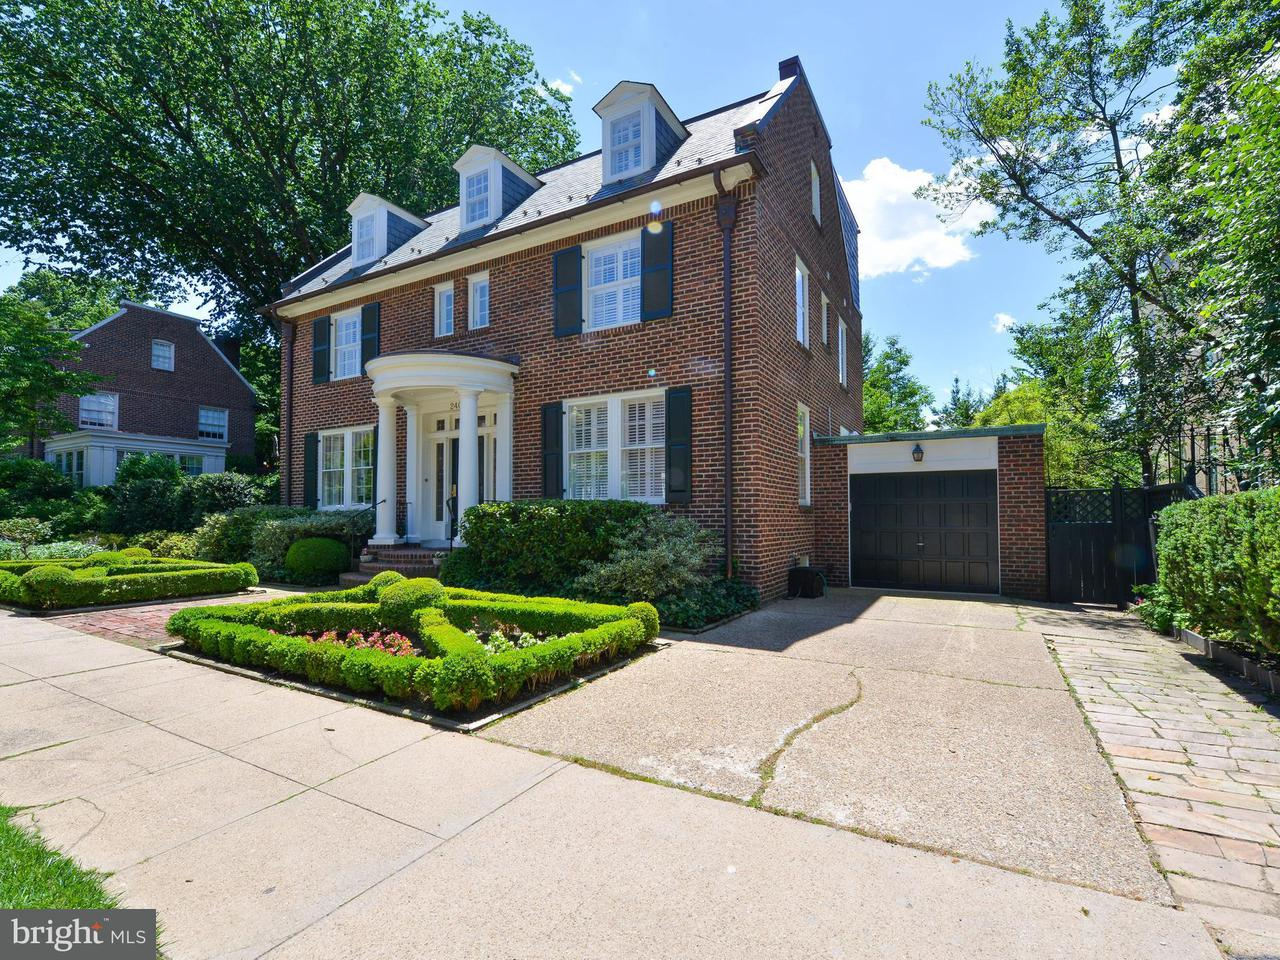 Single Family for Sale at 2408 California St NW Washington, District Of Columbia 20008 United States